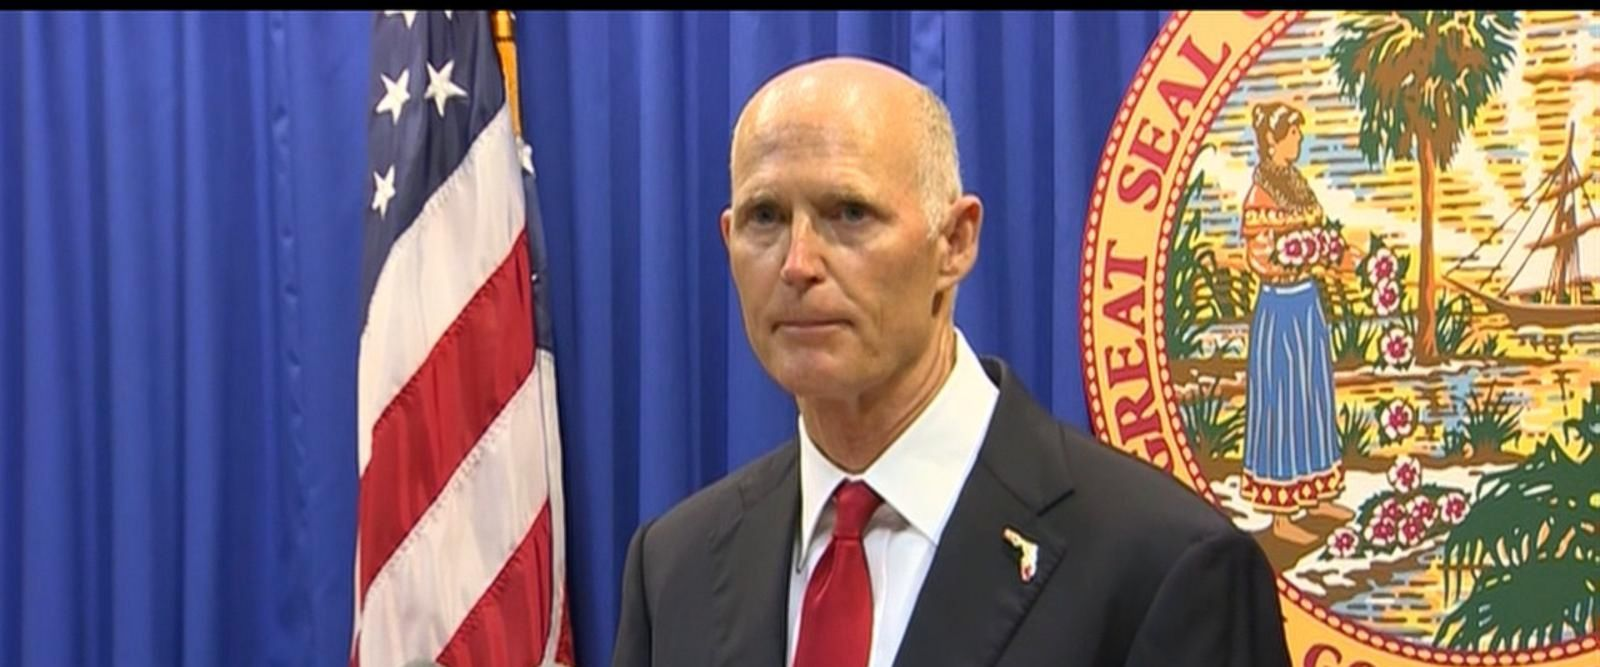 VIDEO: Gov. Rick Scott announced some new plans aimed to help fight gun violence.